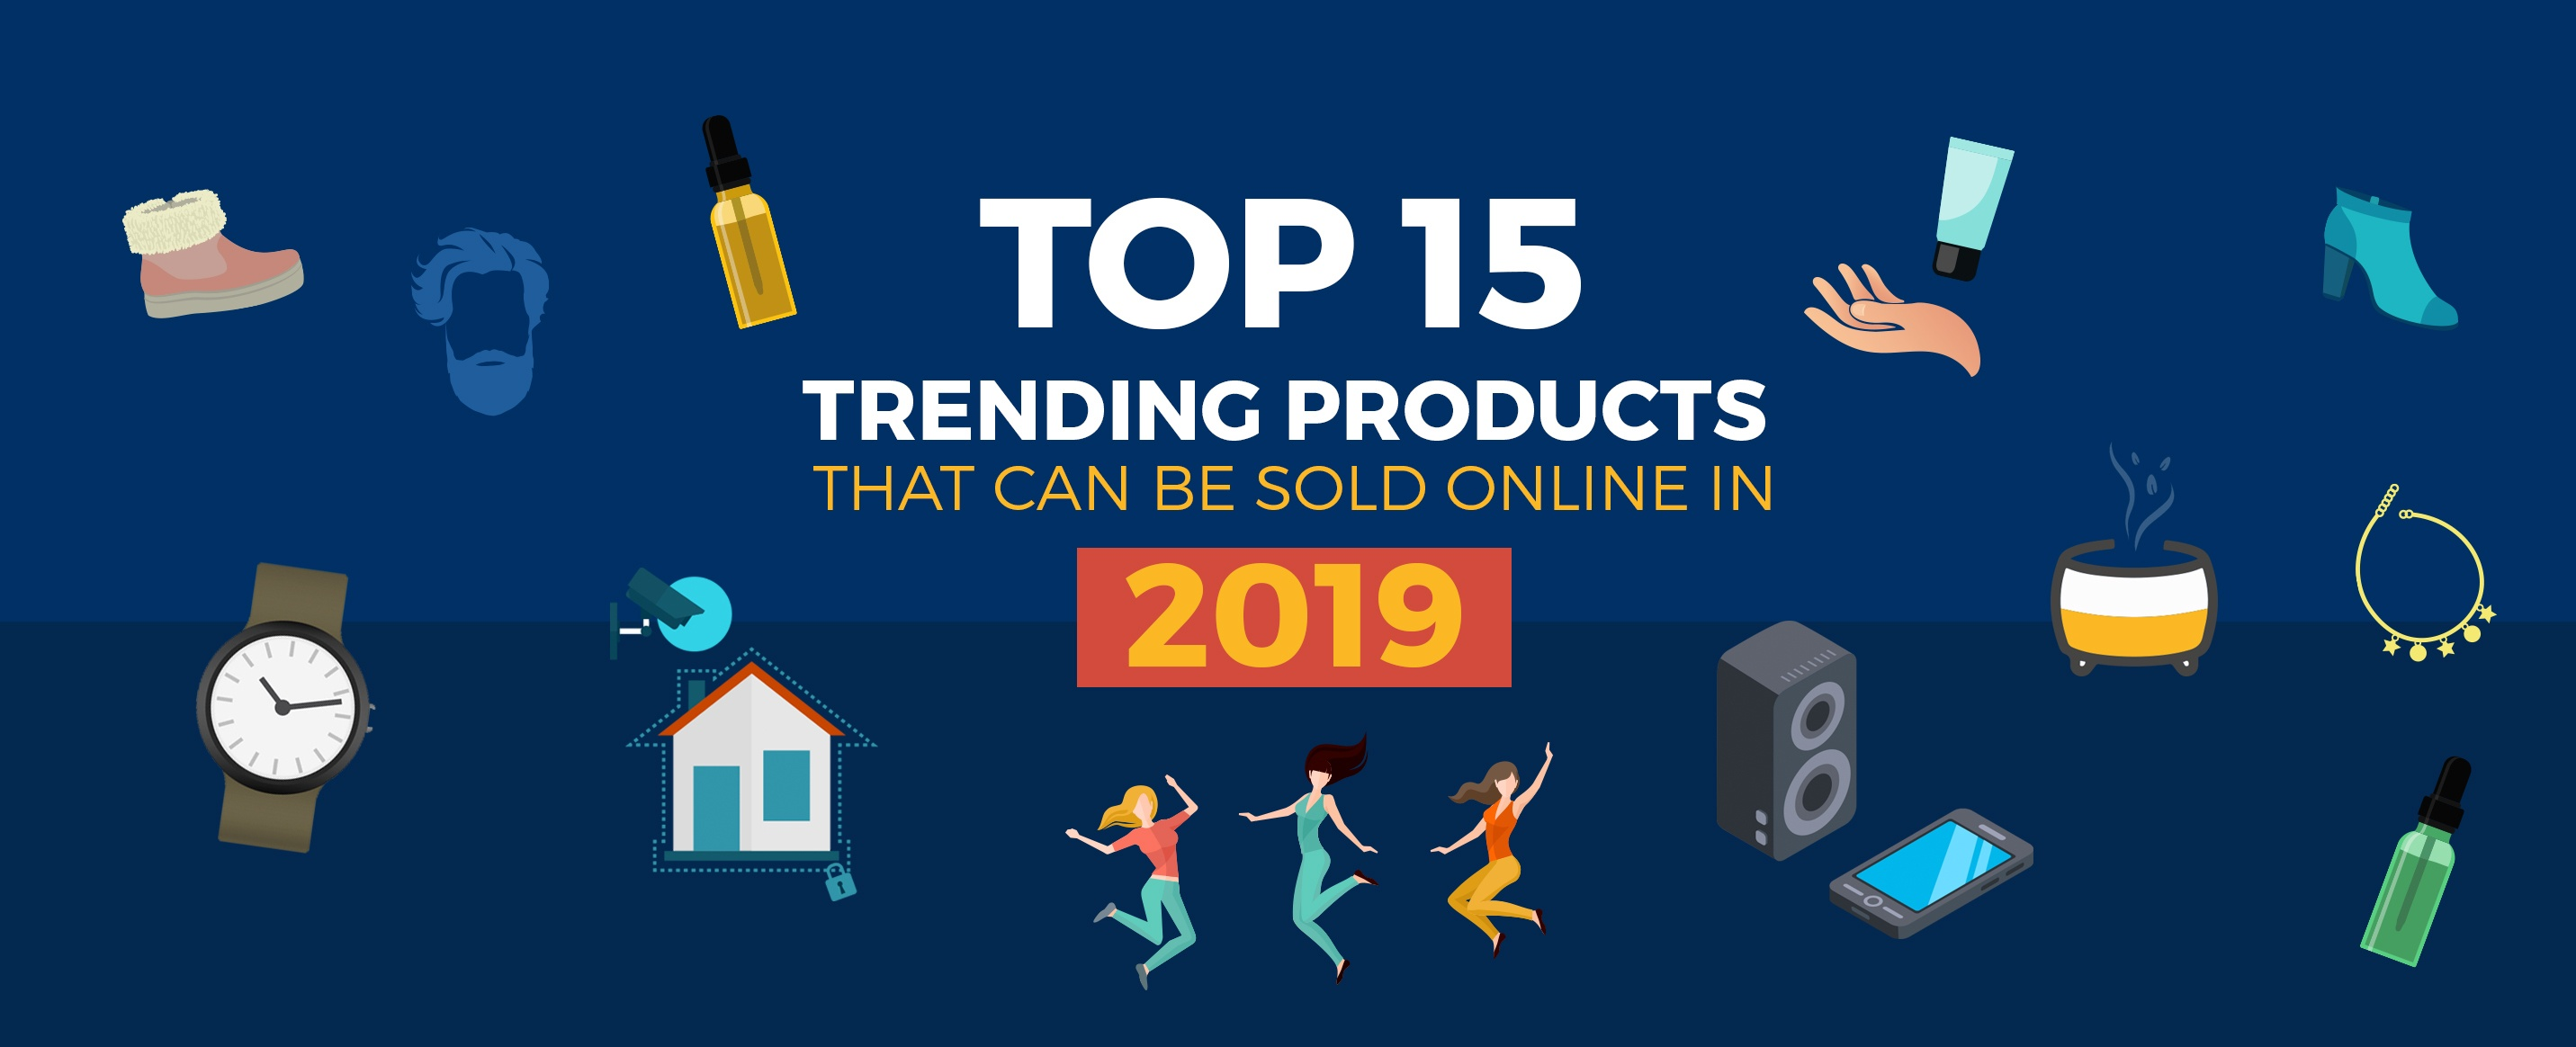 Top-15-Trending-Products-That-Can-be-Sold-Online-in-2019